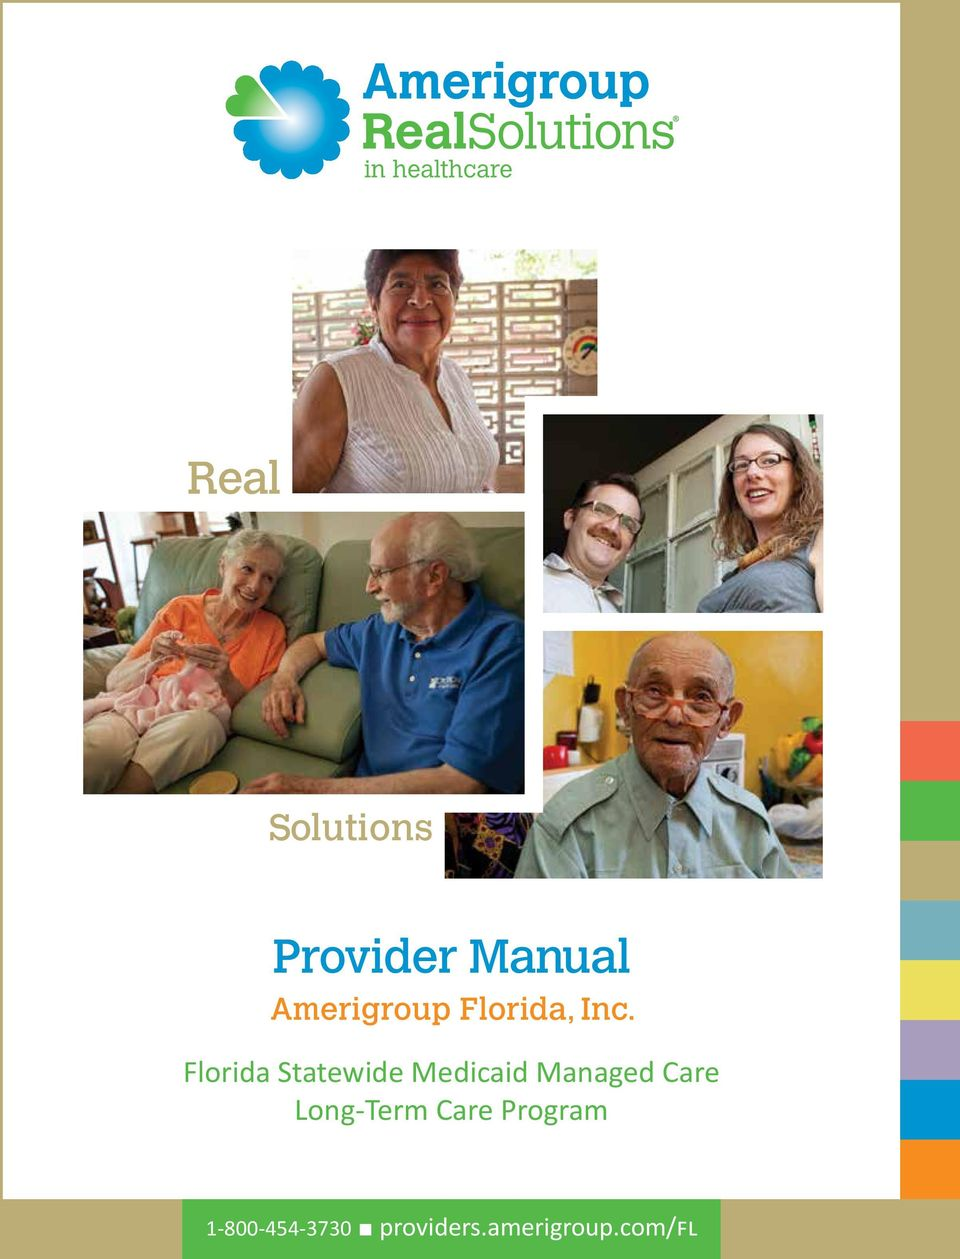 11 Florida Statewide Medicaid Managed Care